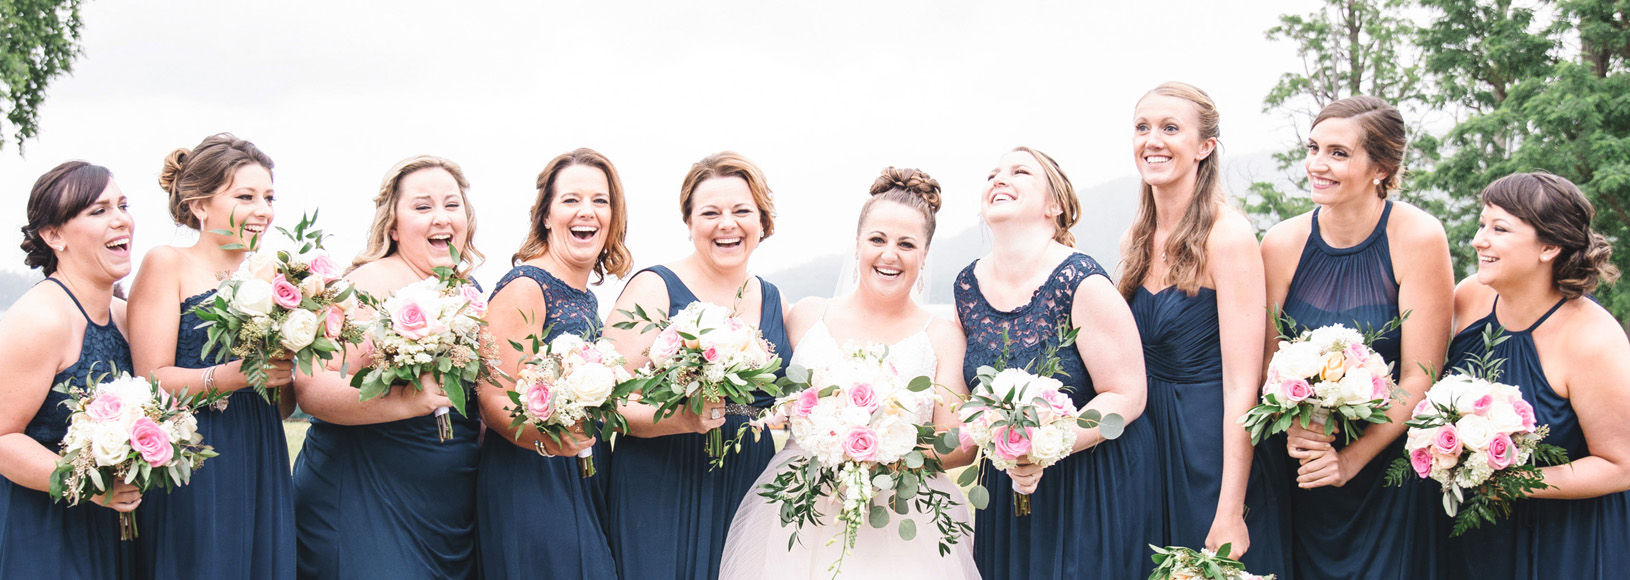 monika normand photography bridesmaids laughing